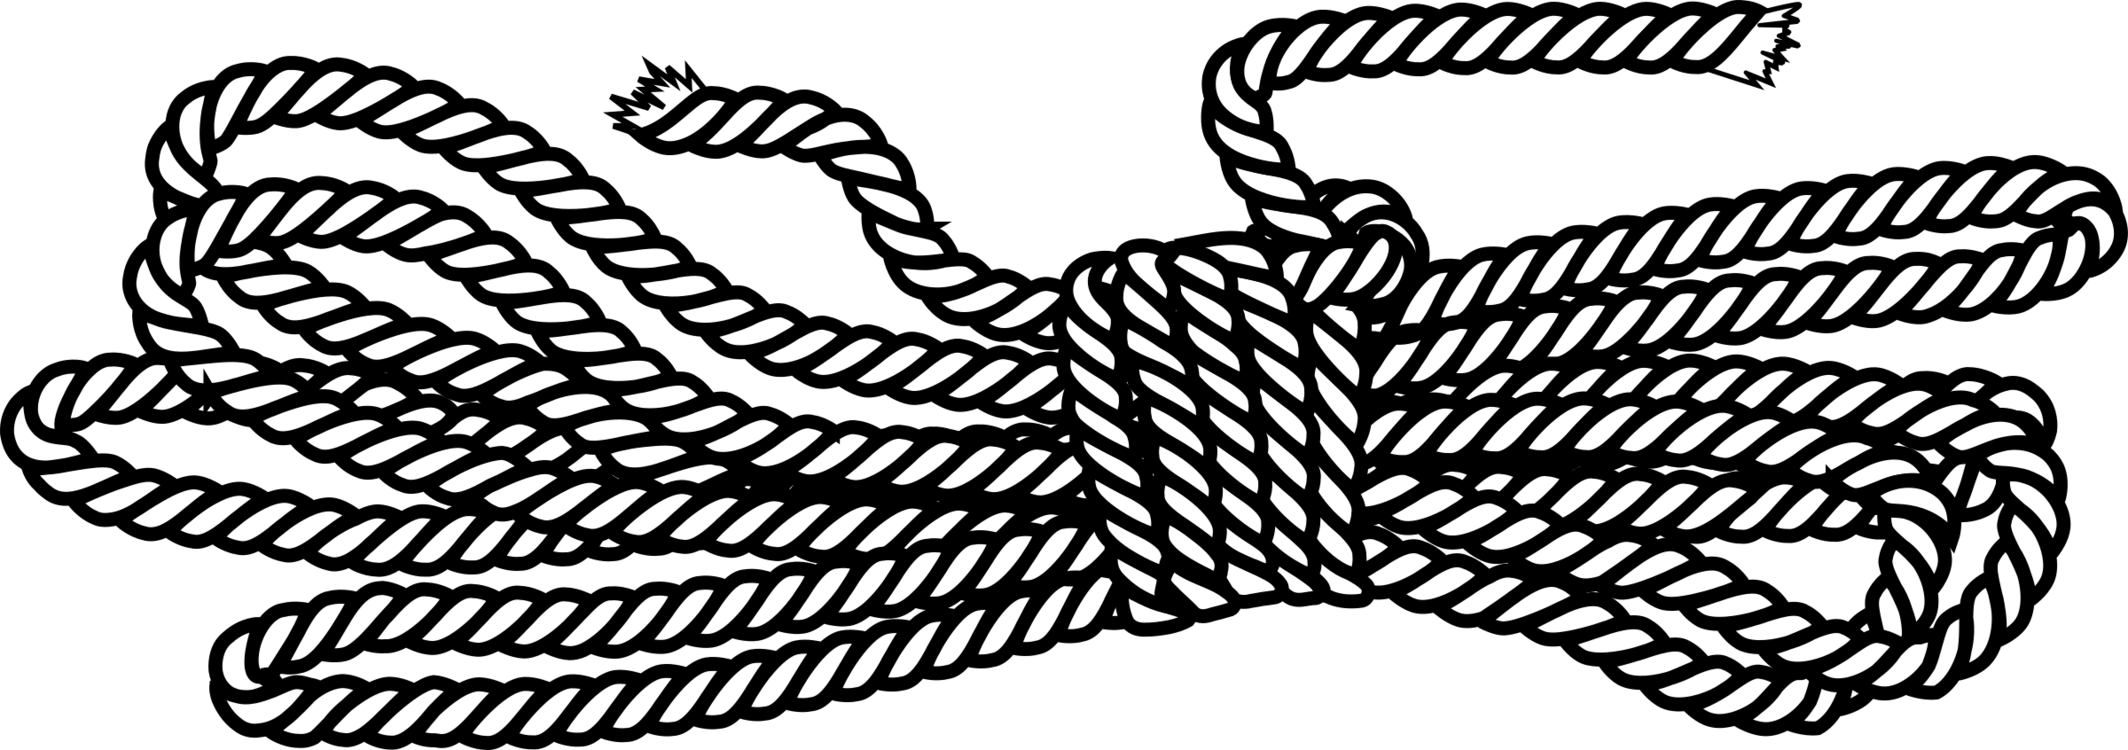 Coil drawing black and white